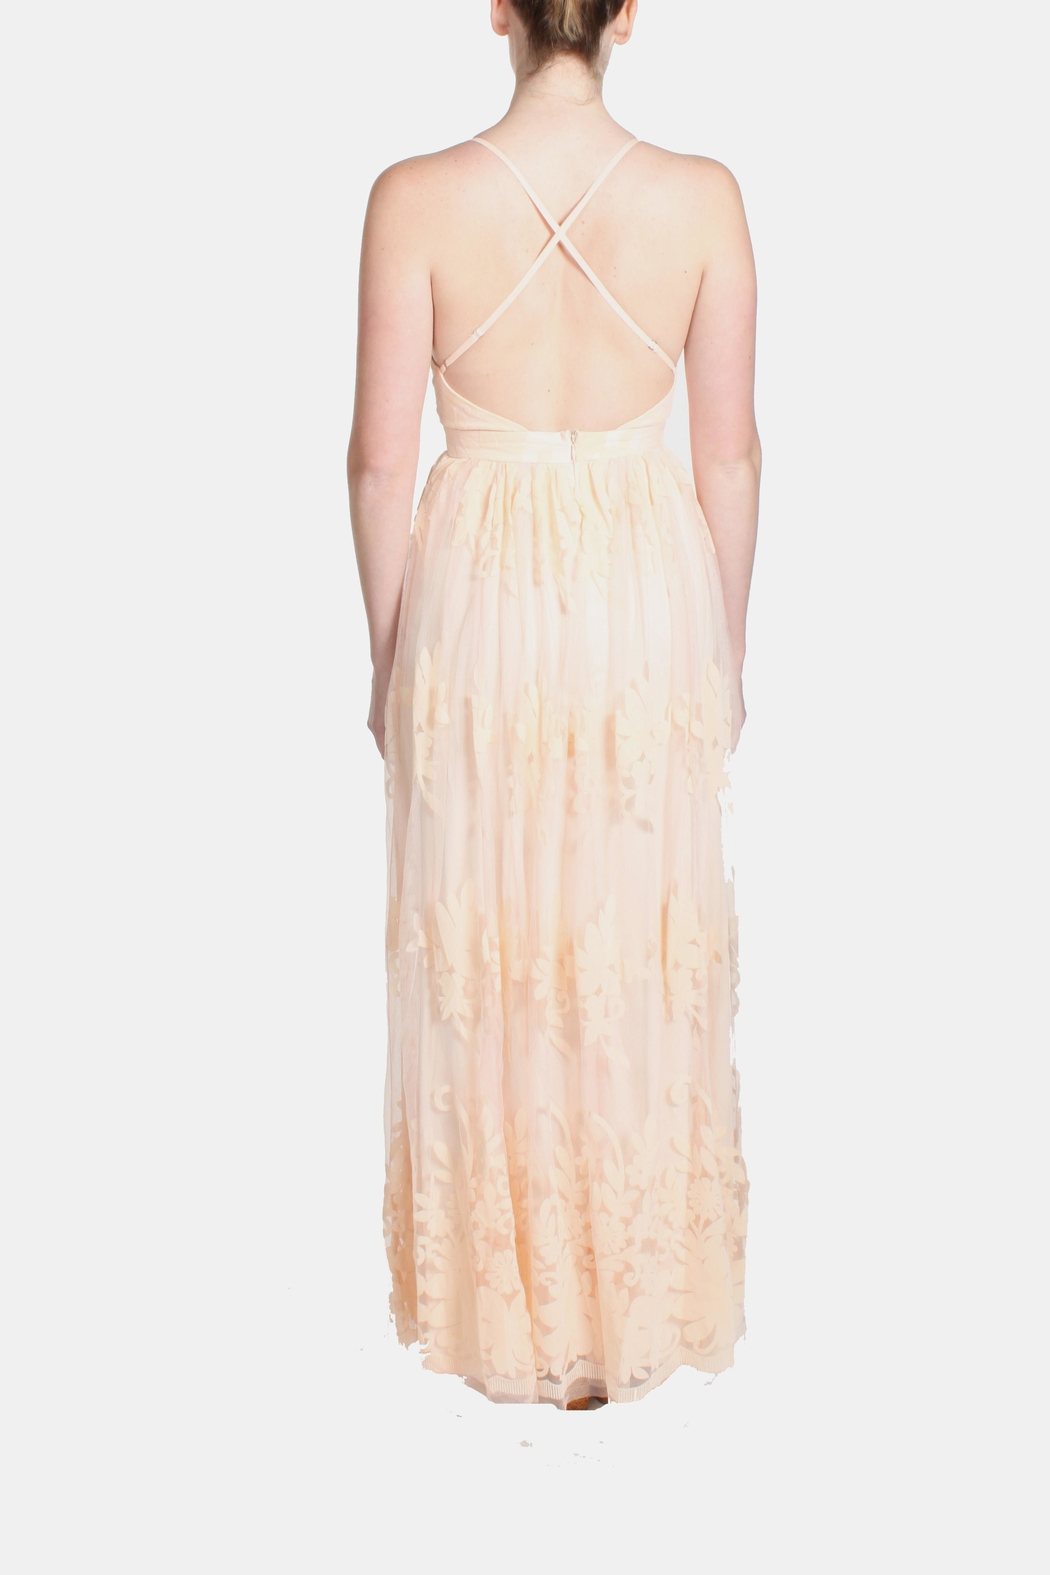 luxxel Pink Monochrome Floral Gown - Back Cropped Image